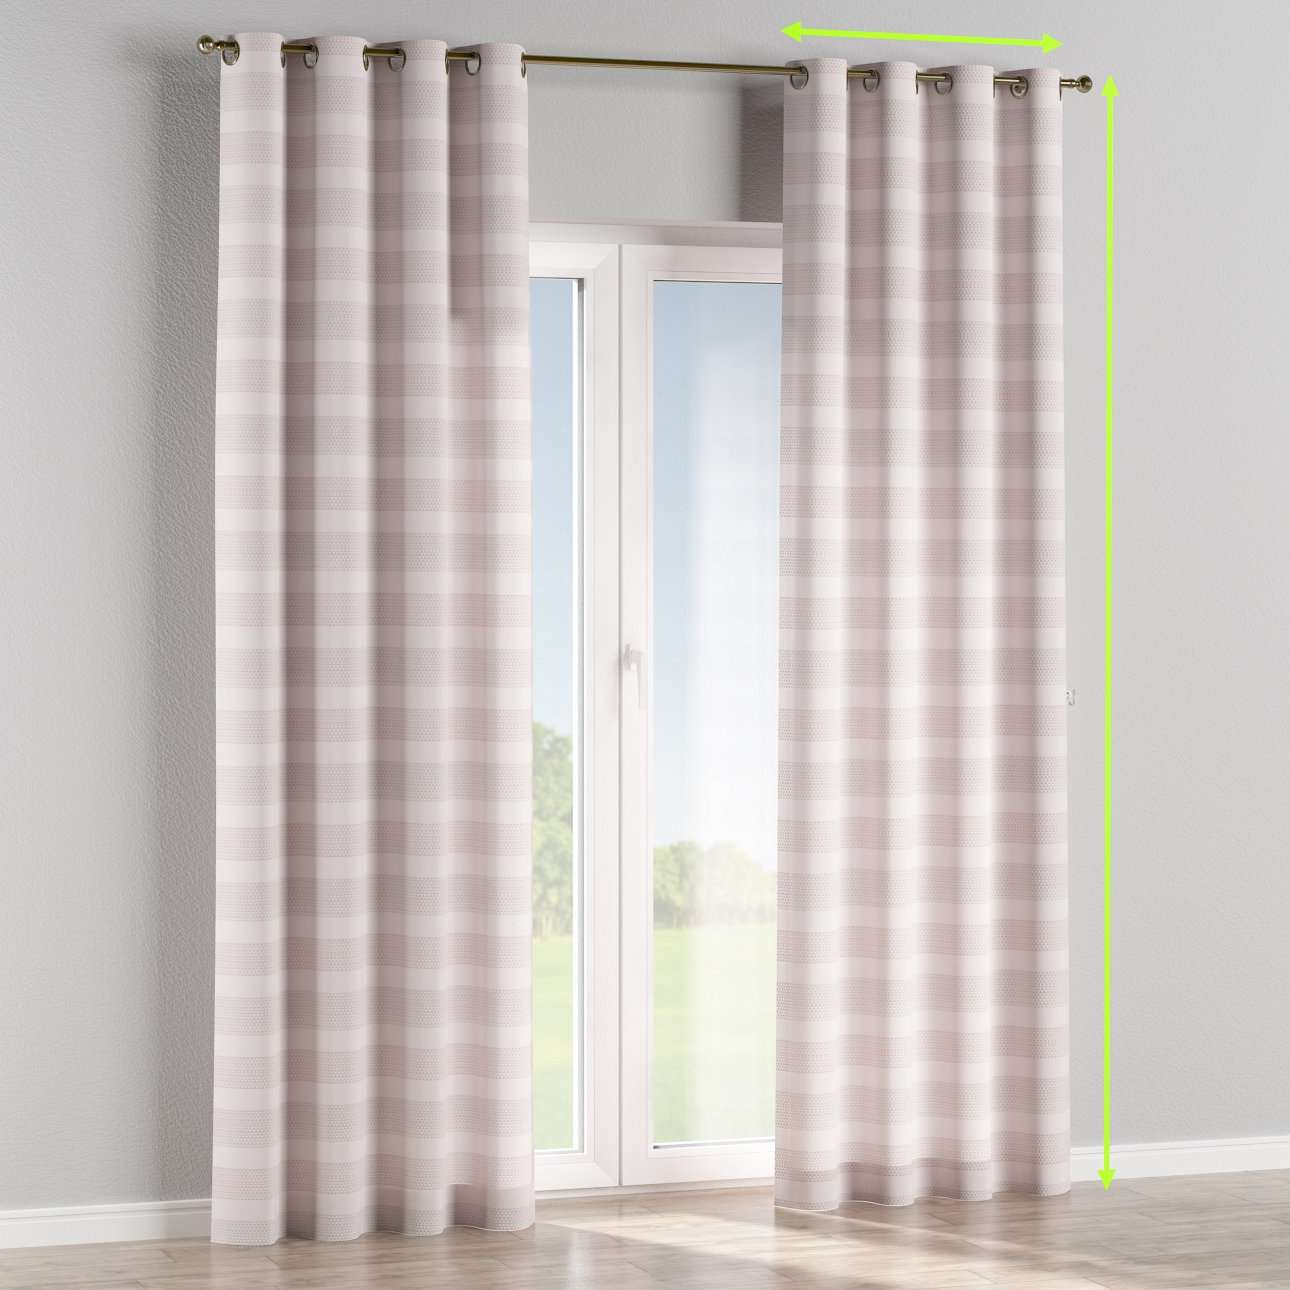 Eyelet lined curtains in collection Rustica, fabric: 140-29